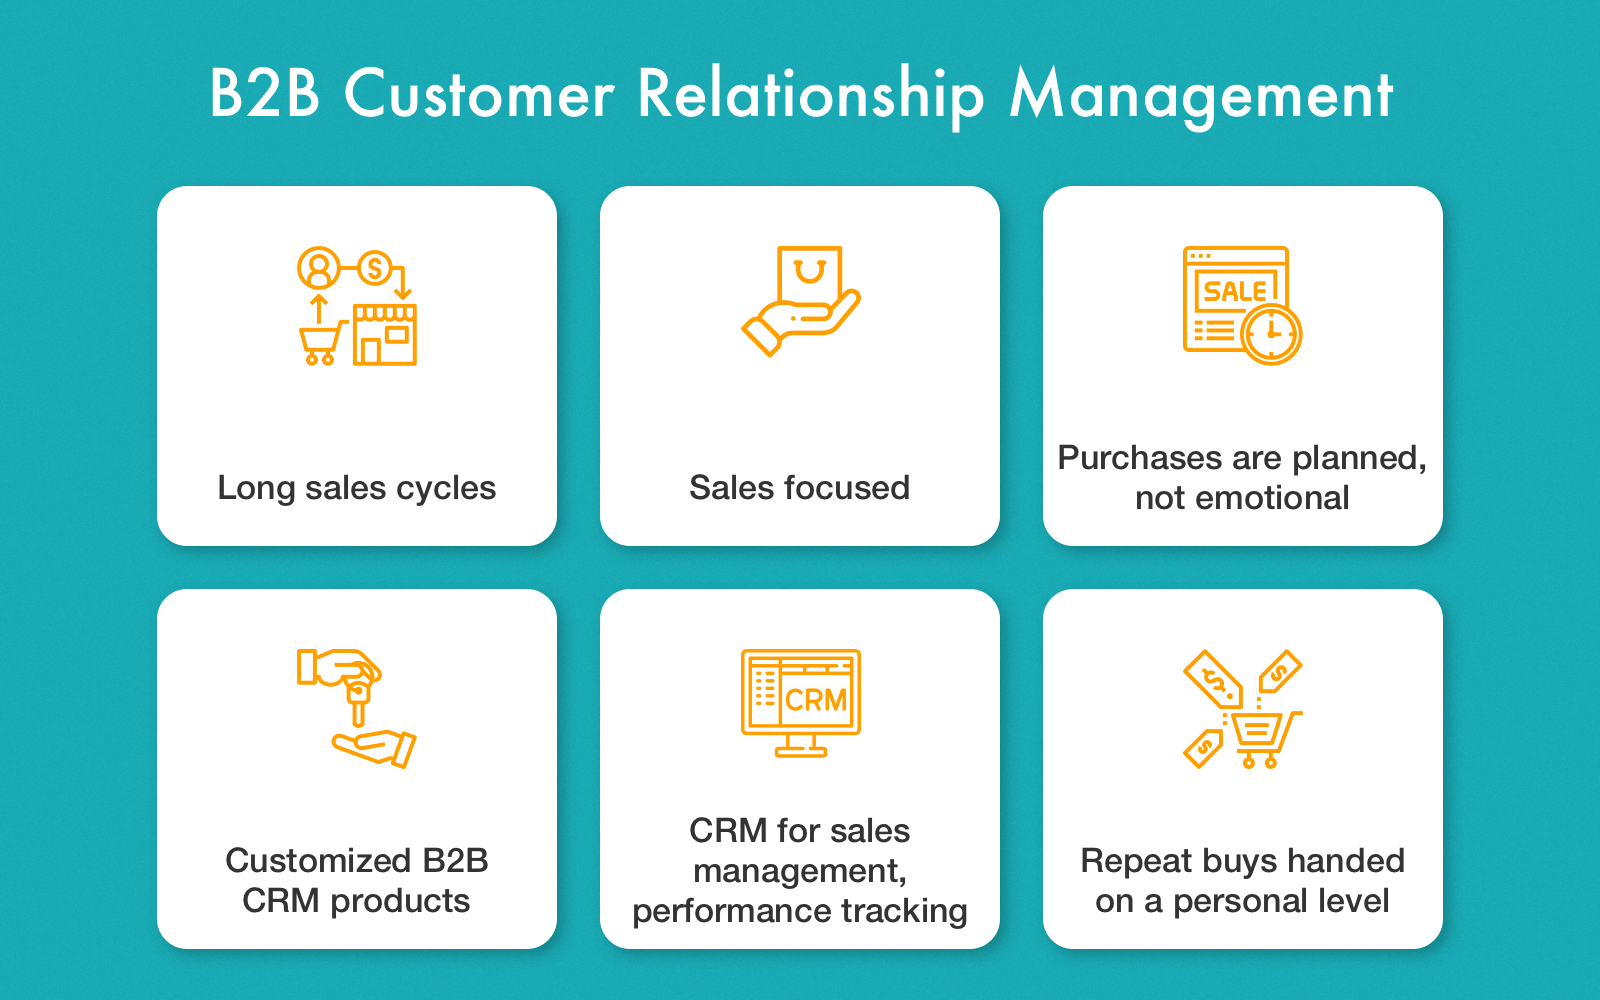 Main features of B2B Customer Relationship Management